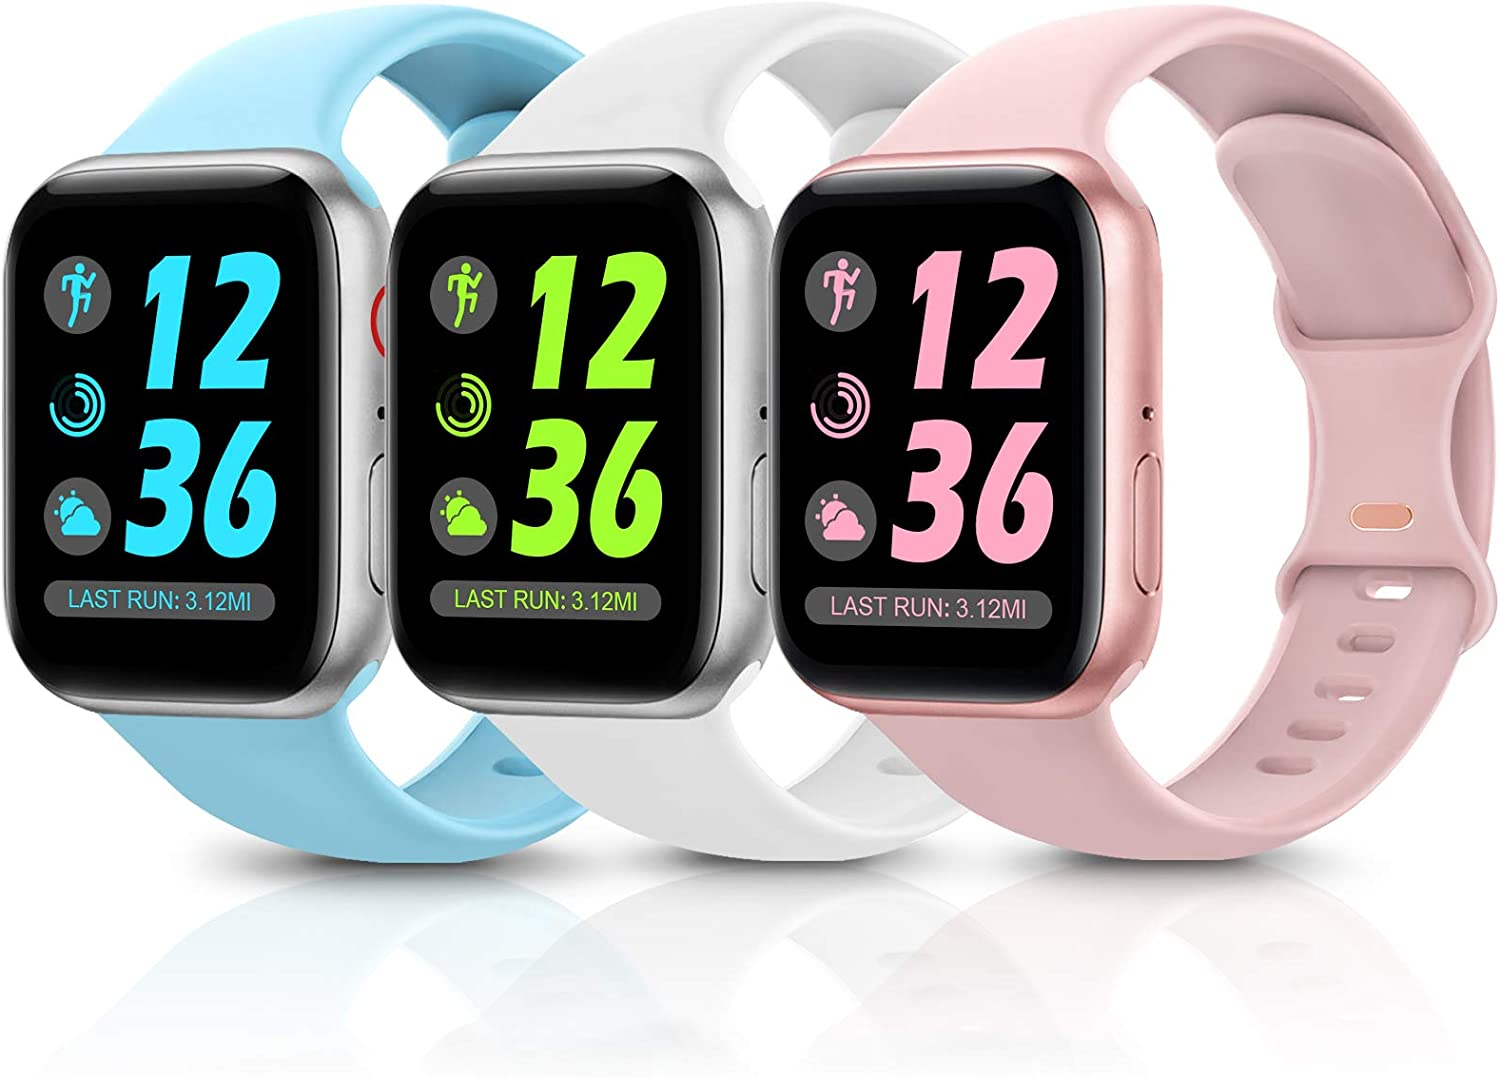 Sport Silicone Band Compatible with Apple Watch Bands 38mm 40mm 42mm 44mm,Soft Replacement Wristbands for iWatch Series 1/2/3/4/5/6/SE,Women Men,3 Pack(Sea Wave Blue/White/Pink,38mm/40mm-S/M)